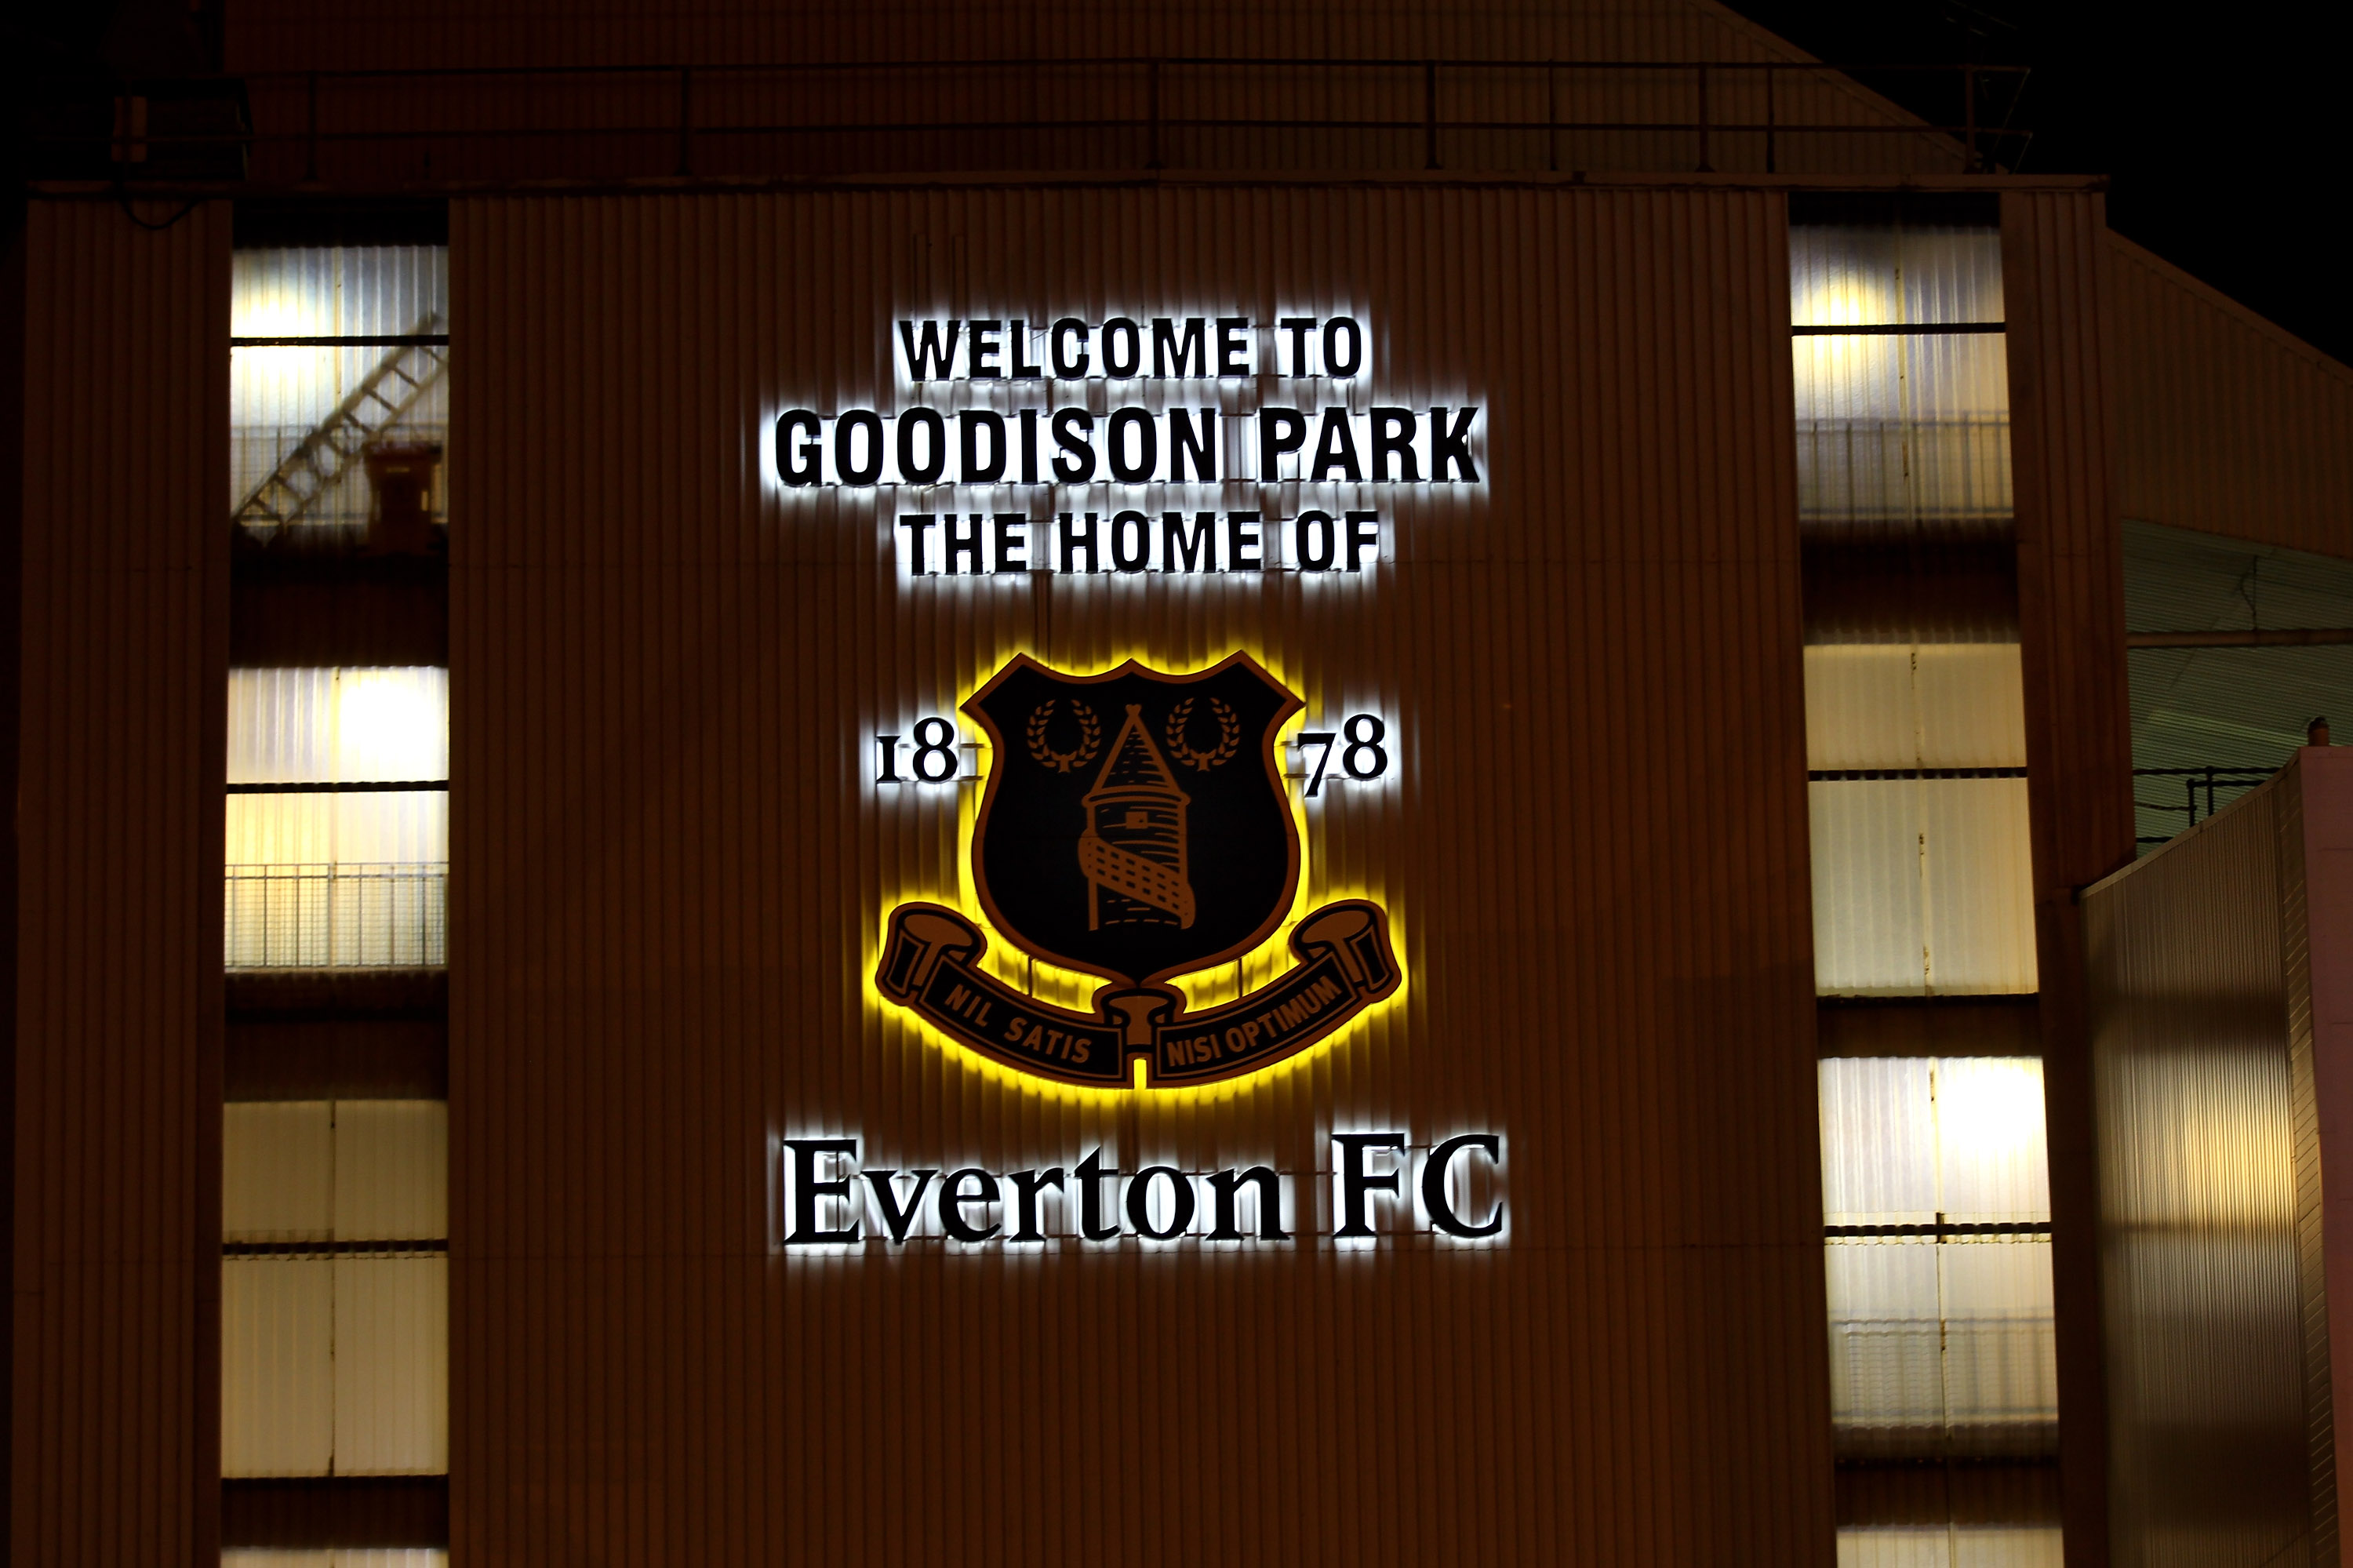 LIVERPOOL, ENGLAND - JANUARY 05:  General View of the Everton Club Crest prior to the Barclays Premier League match between Everton and Tottenham Hotspur at Goodison Park on January 5, 2011 in Liverpool, England.  (Photo by Alex Livesey/Getty Images)